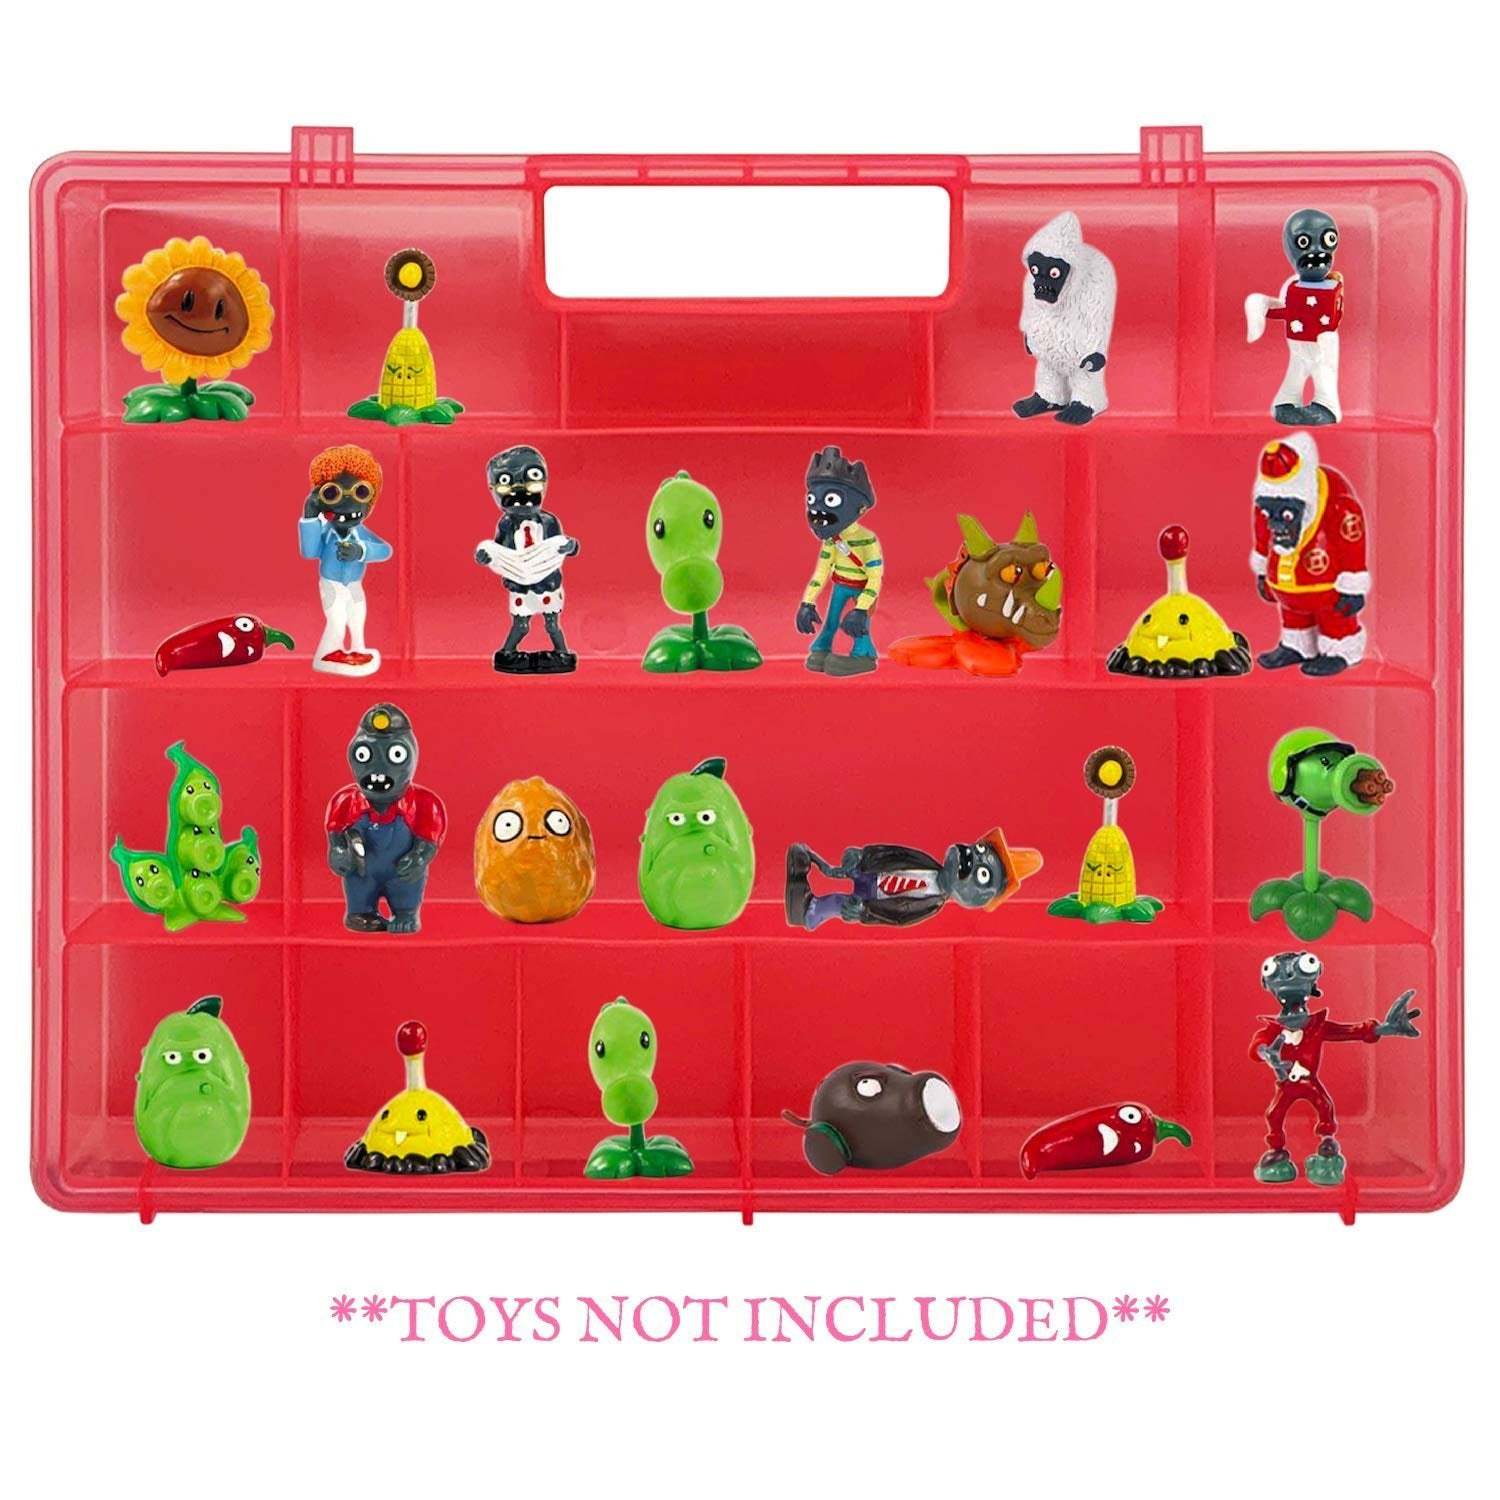 Life Made Better Reinforced, Well-Made Durable Design, Pink Toy Case, Compatible to fit Plants vs Zombies, Carrying Case for Toy Figurines and Accessories